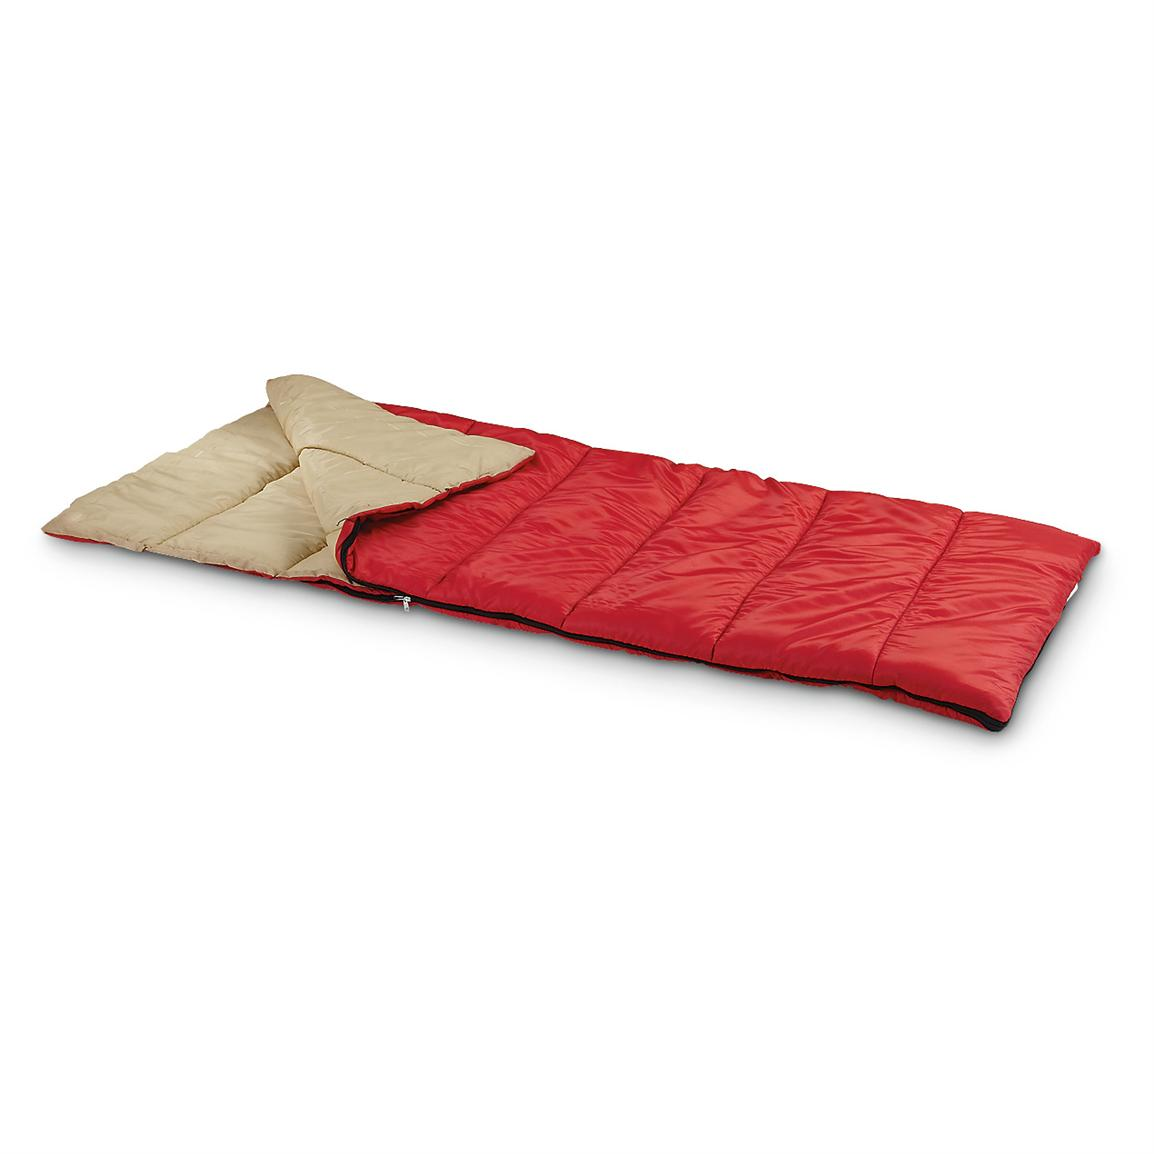 "2 Famous Maker 33x75"" Sleeping Bags, Red with Tan Interior"